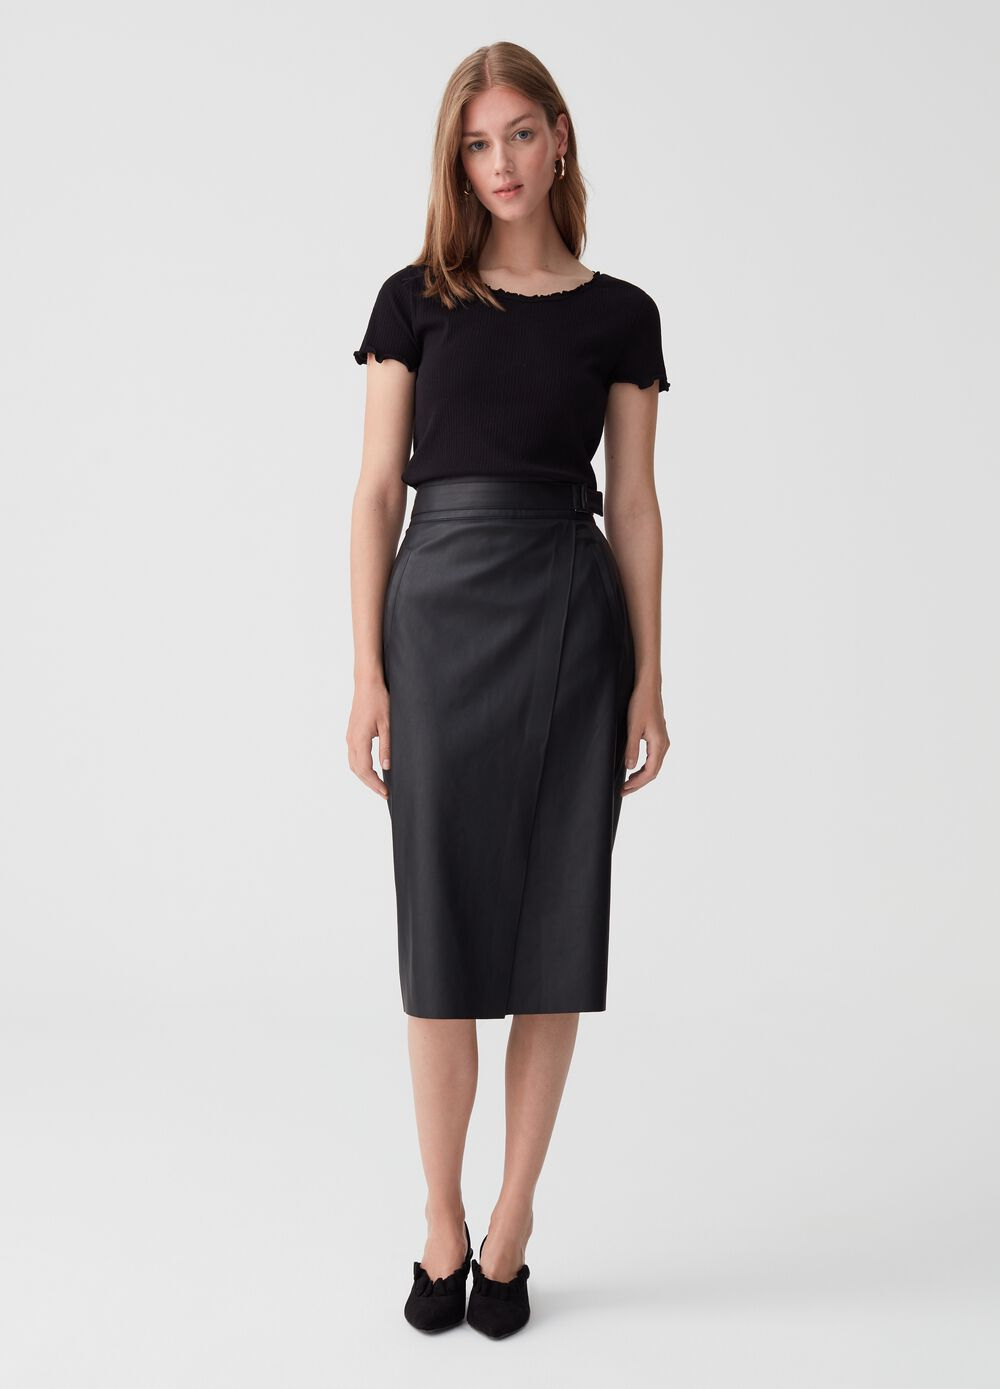 Leather-look wraparound skirt with belt